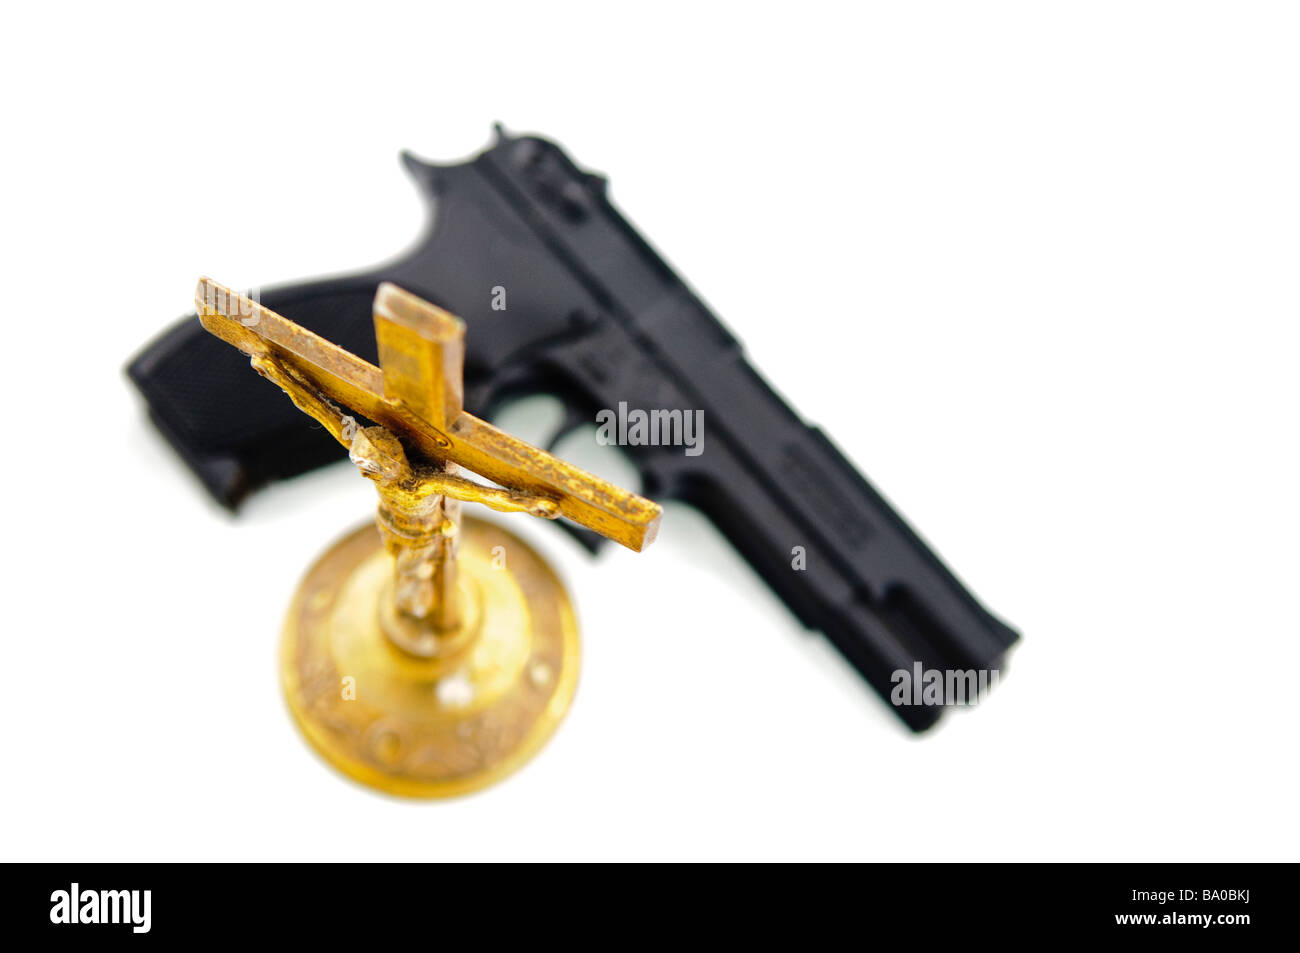 Handgun beside an old brass crucifix NOTE Handgun is imitation toy and marked accordingly - Stock Image